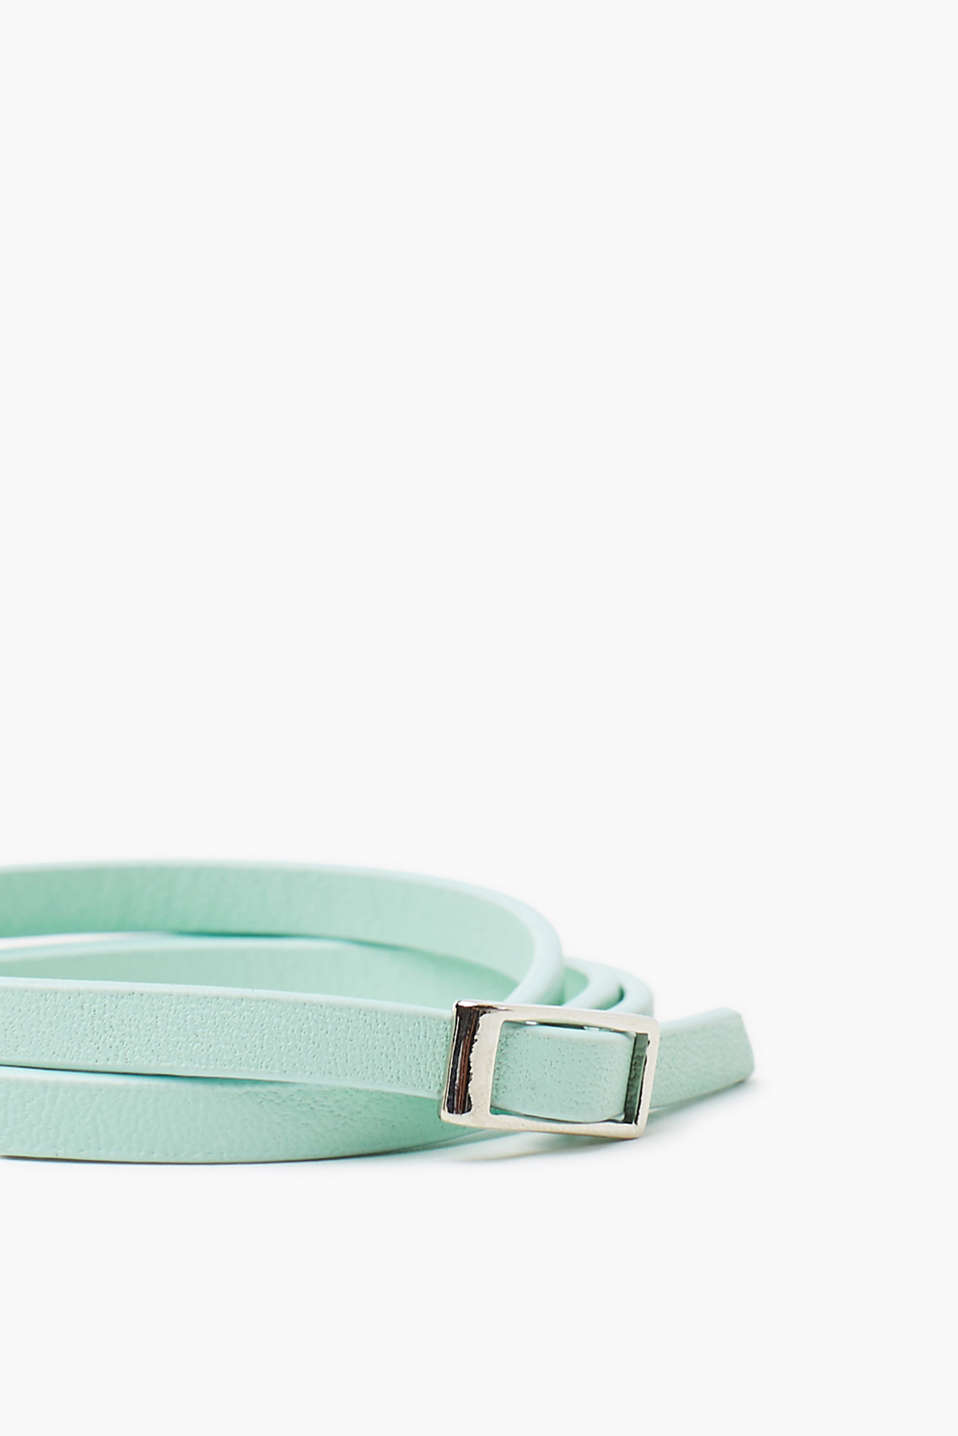 Leather bracelet in a soft pastel tone